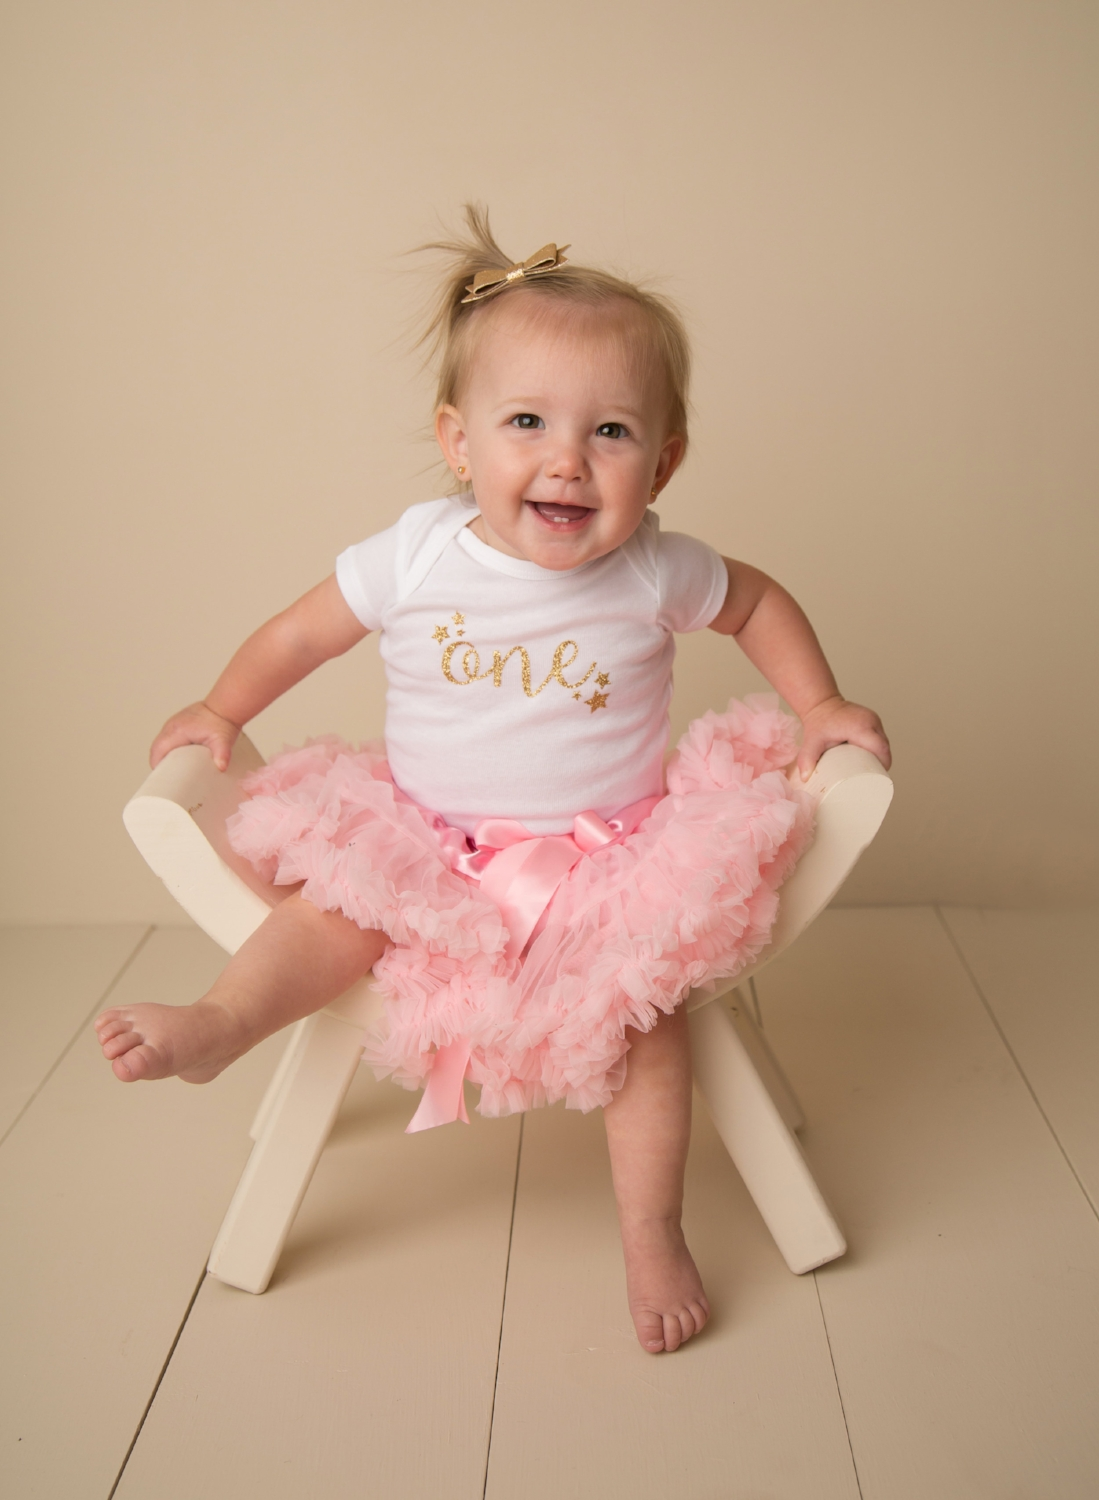 kansas city baby photographer - cute baby pictures - overland park baby photographer - johnson county photography studio